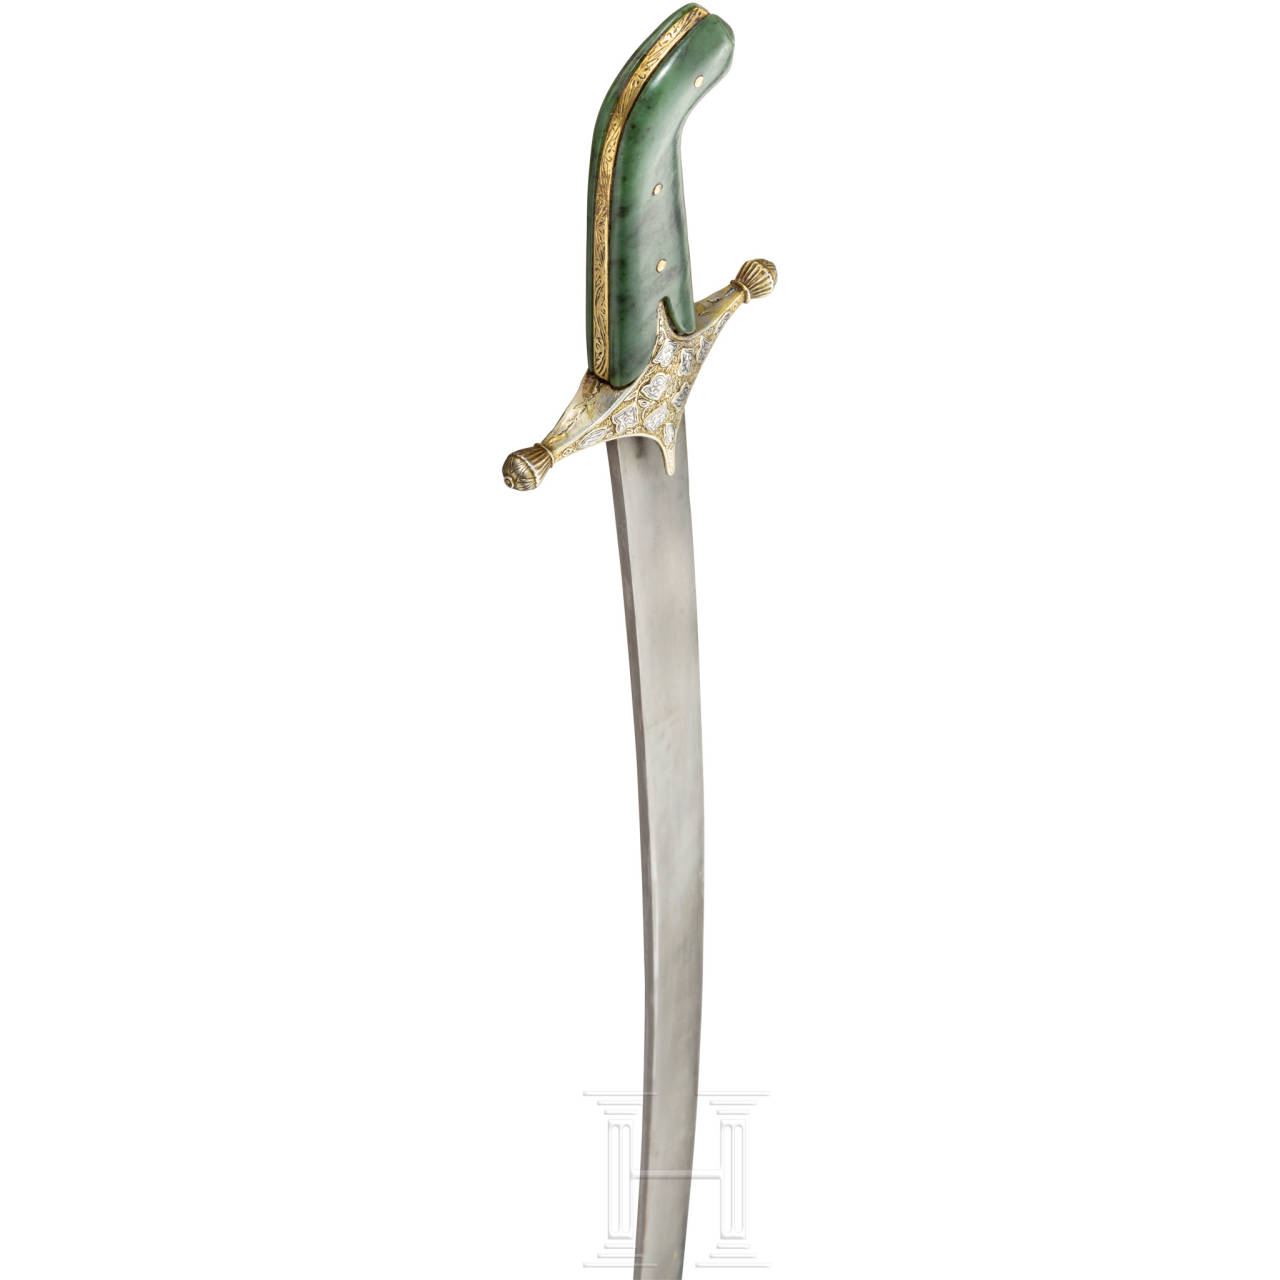 An Ottoman silver-mounted and nielloed, gold-inlaid kilij with a nephrite grip, 2nd half of the 17th century